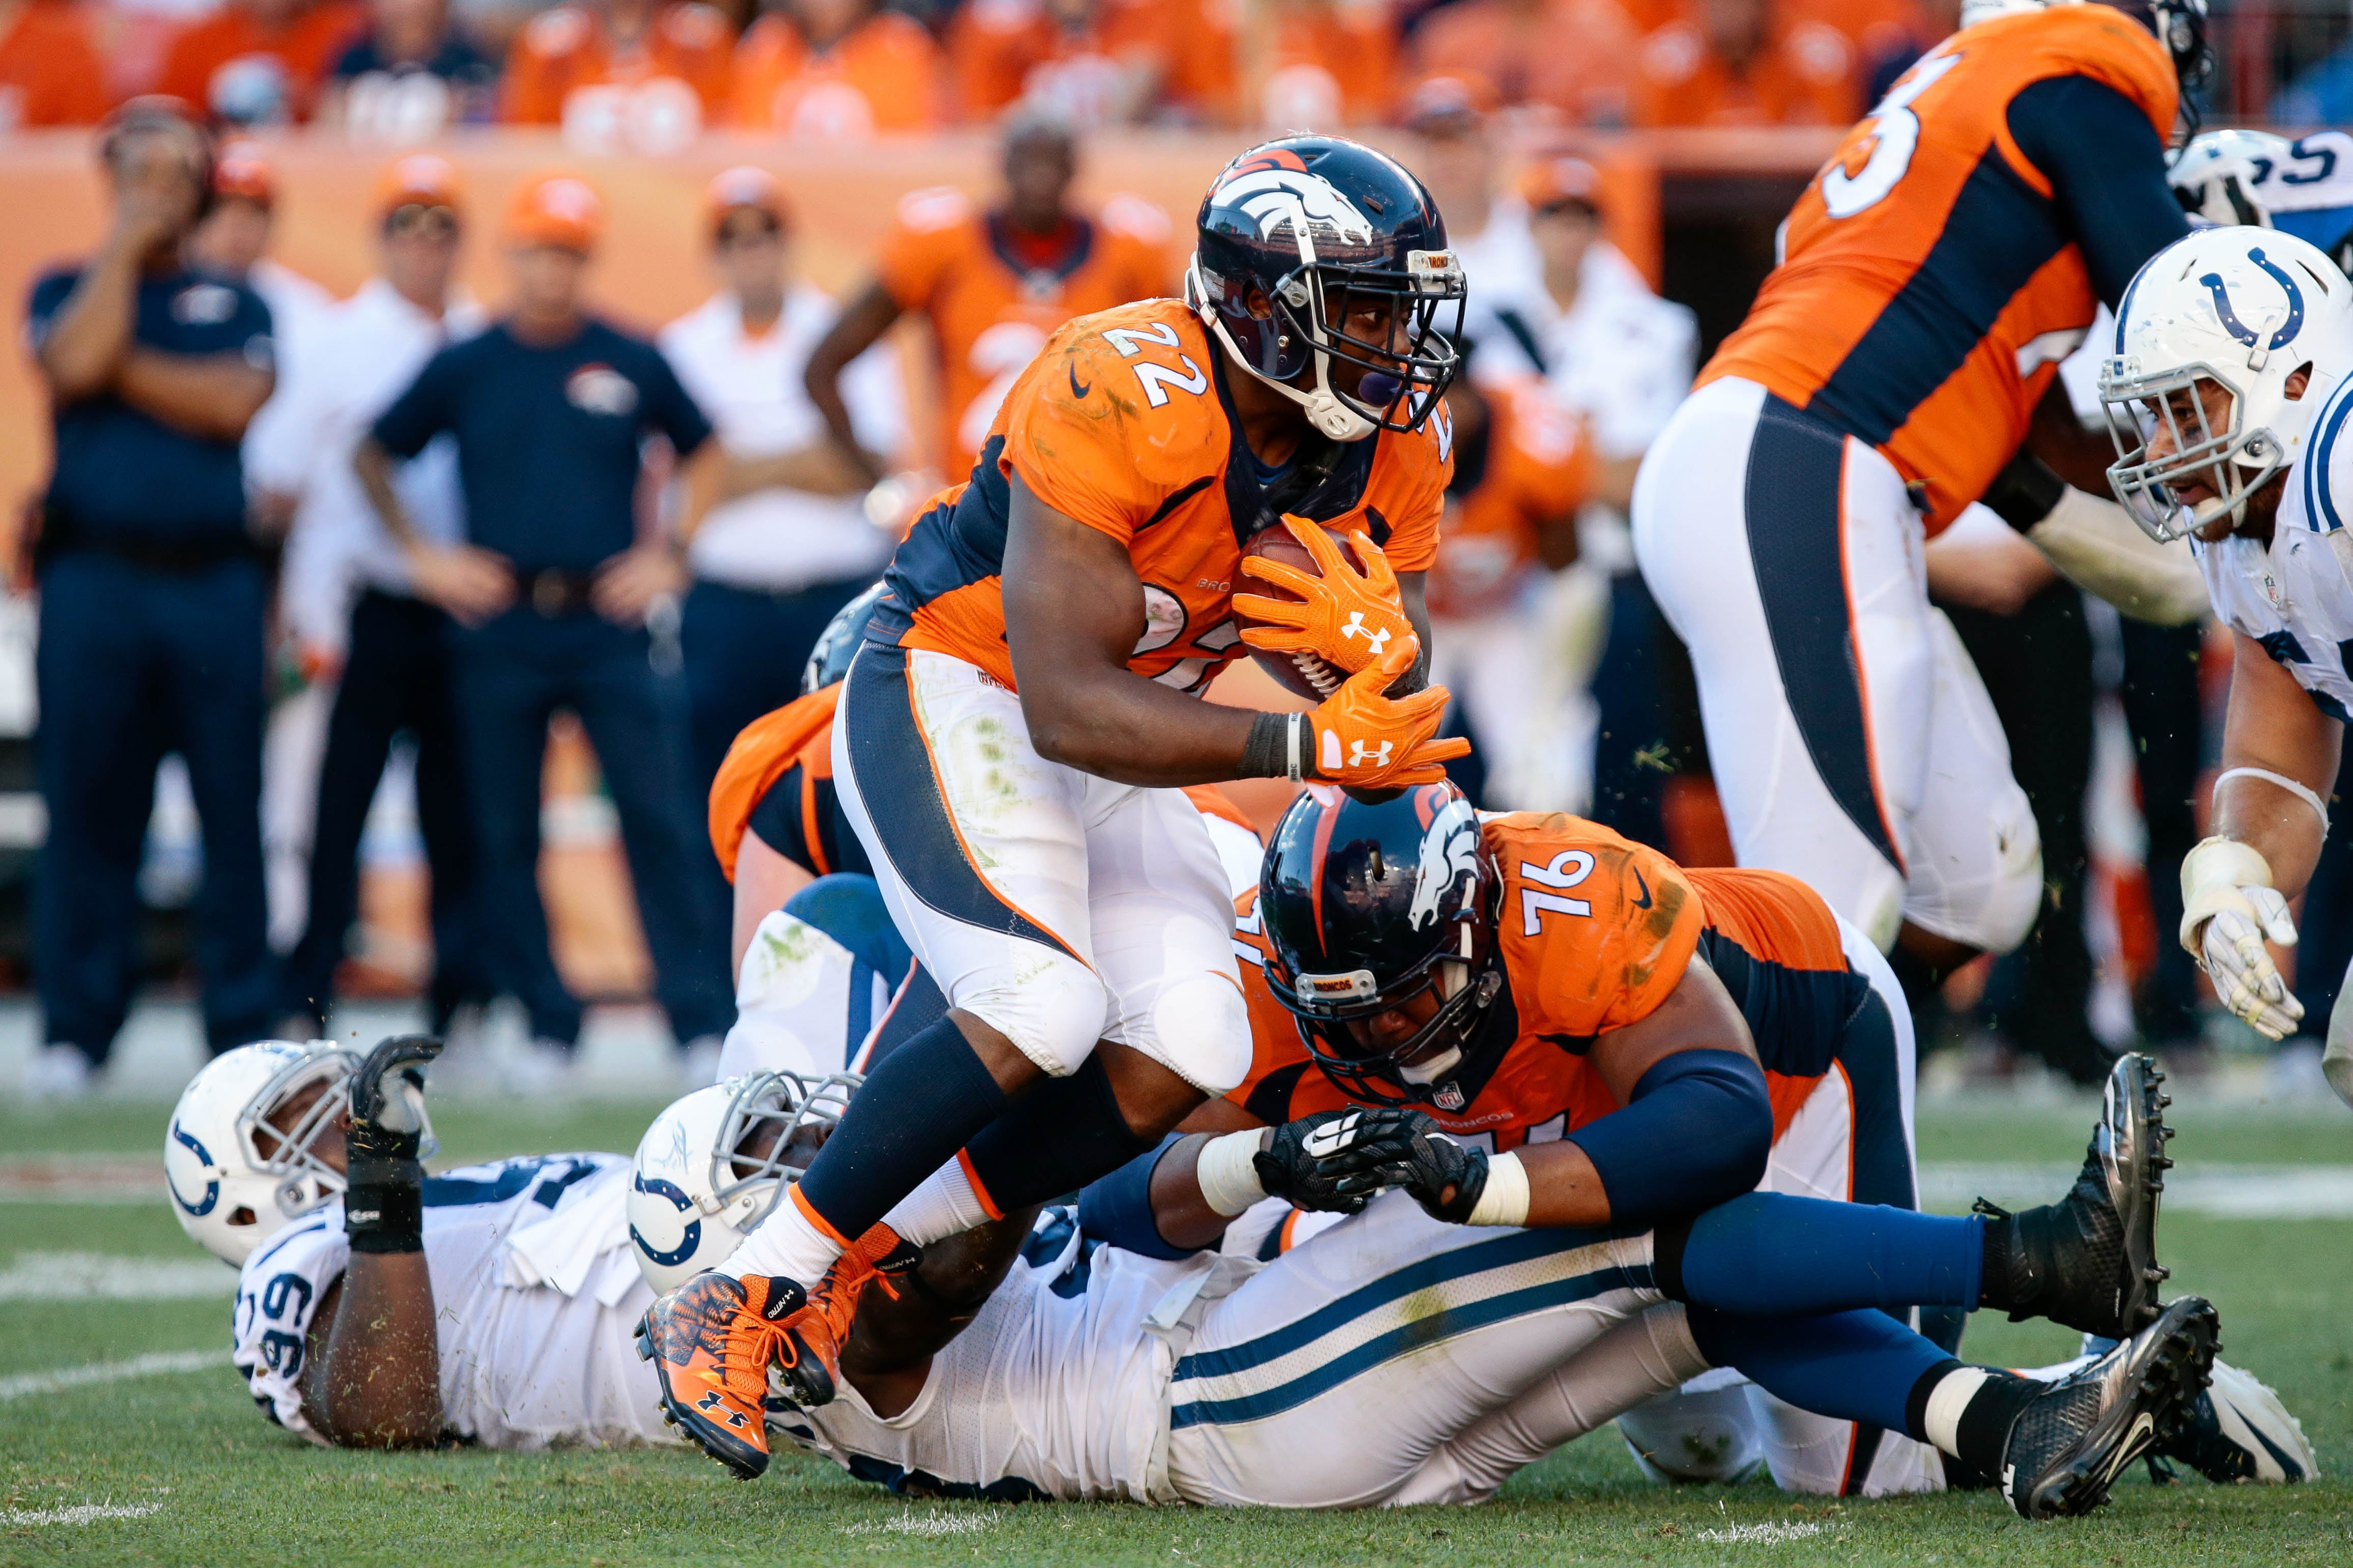 C.J. Anderson joins Carolina Panthers, will platoon with Christian McCaffrey